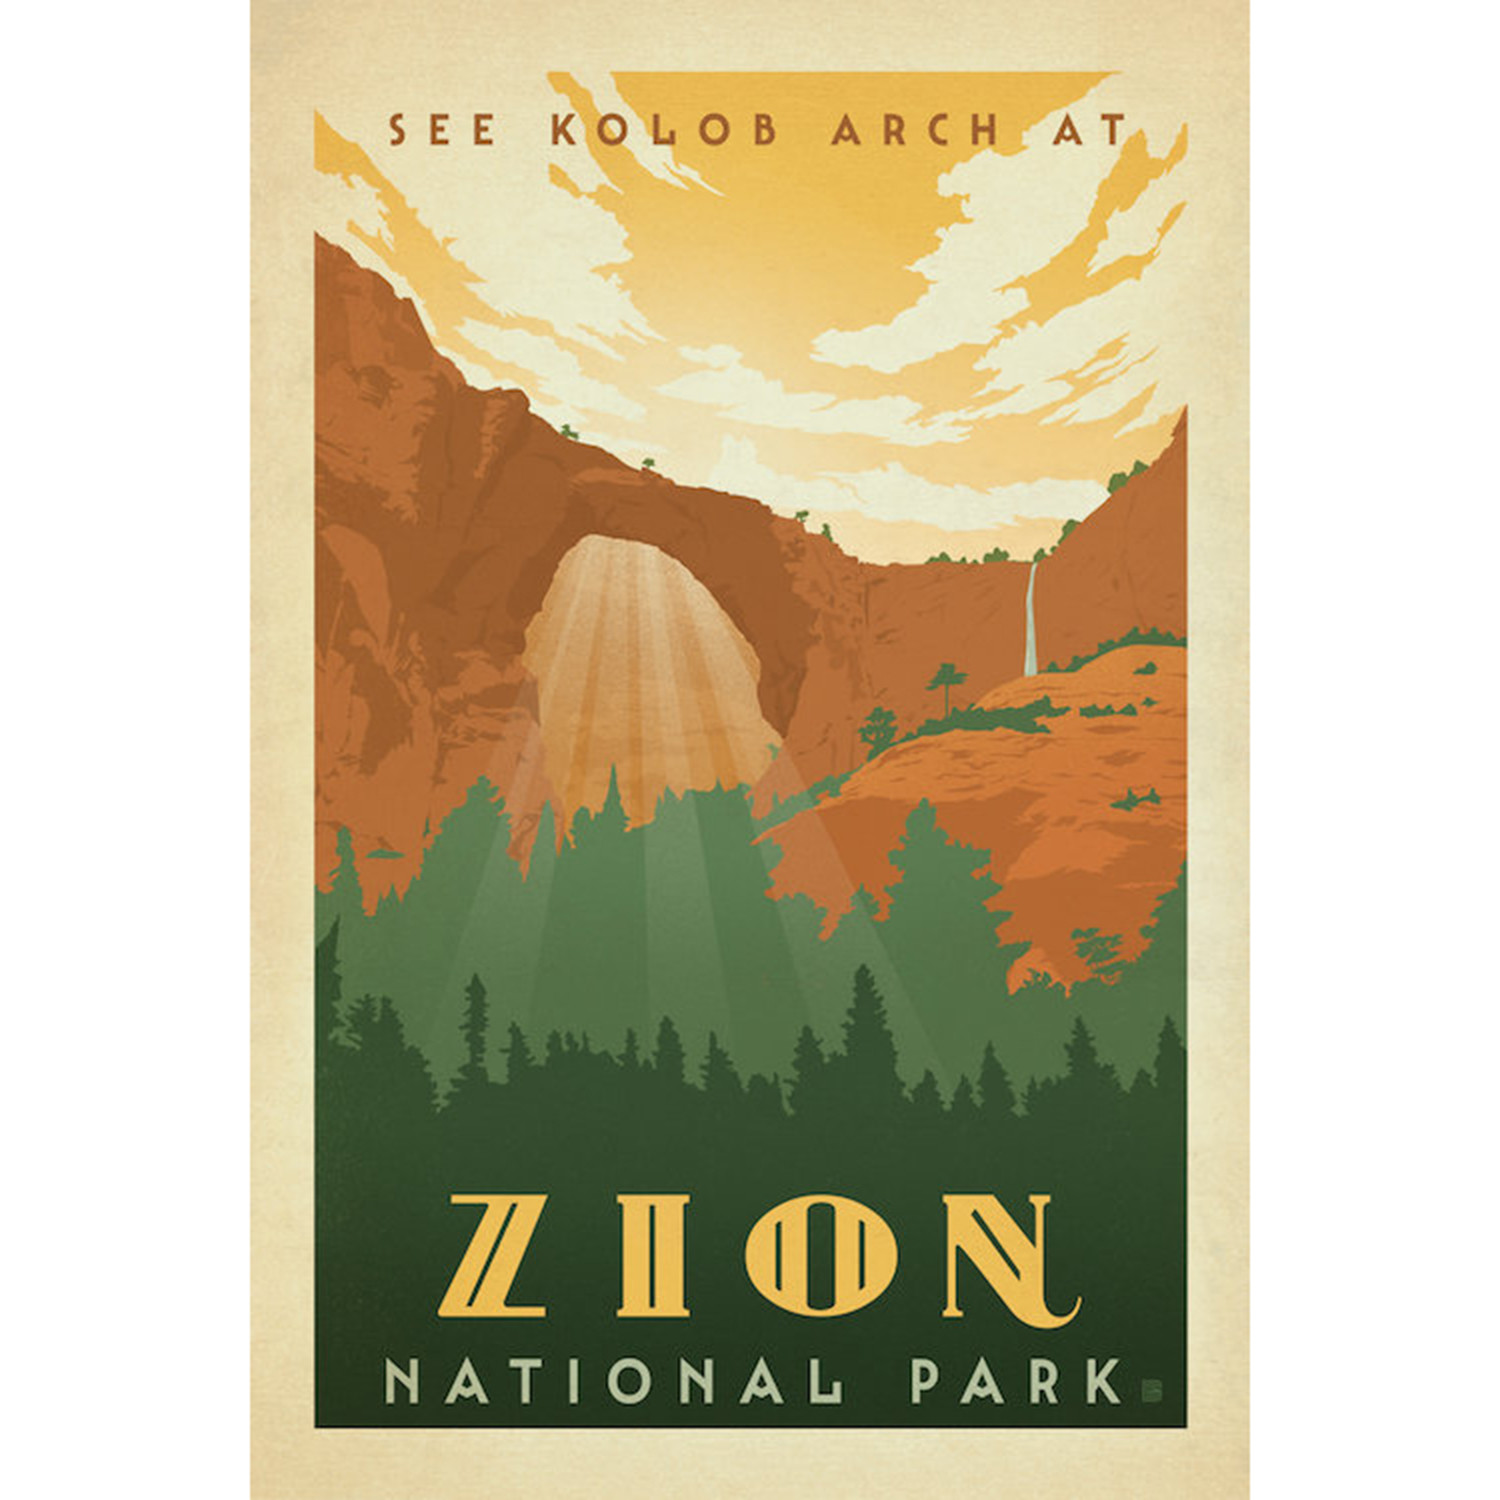 National Parks Collection Movie HD free download 720p